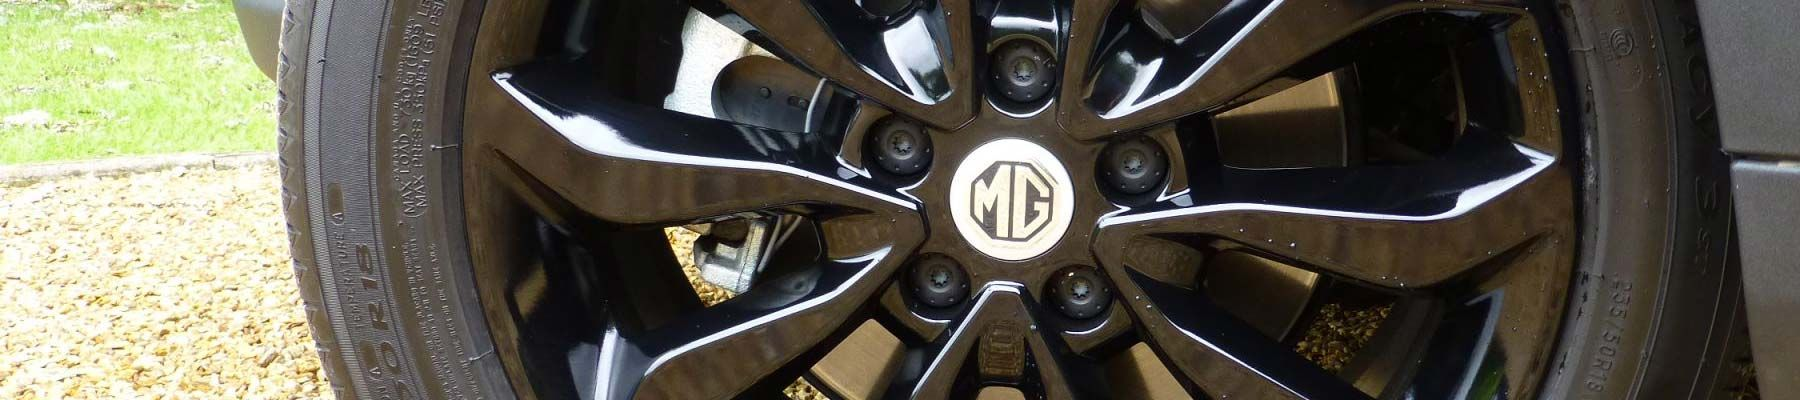 MG Parts at Bushey Heath